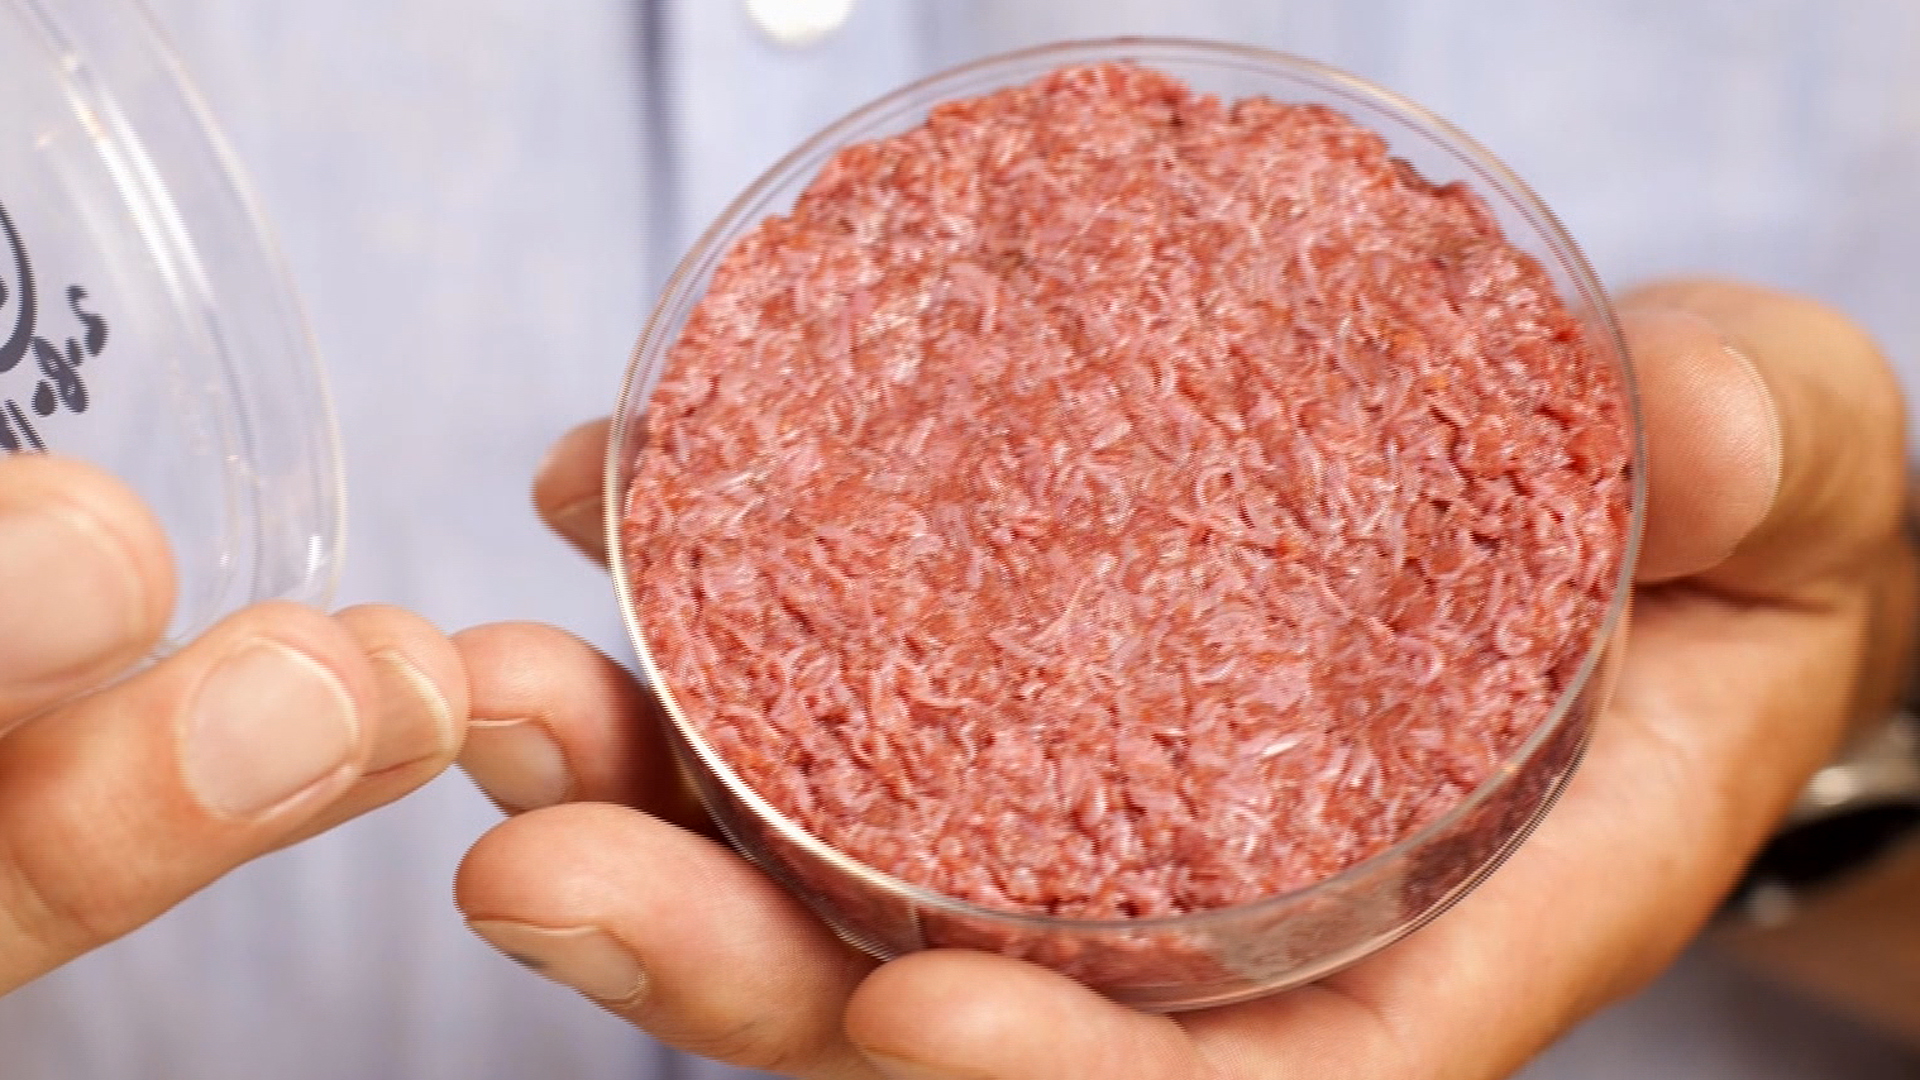 Heck No Or Let's Go? Your Thoughts On Lab-Grown Meat | NCPR News